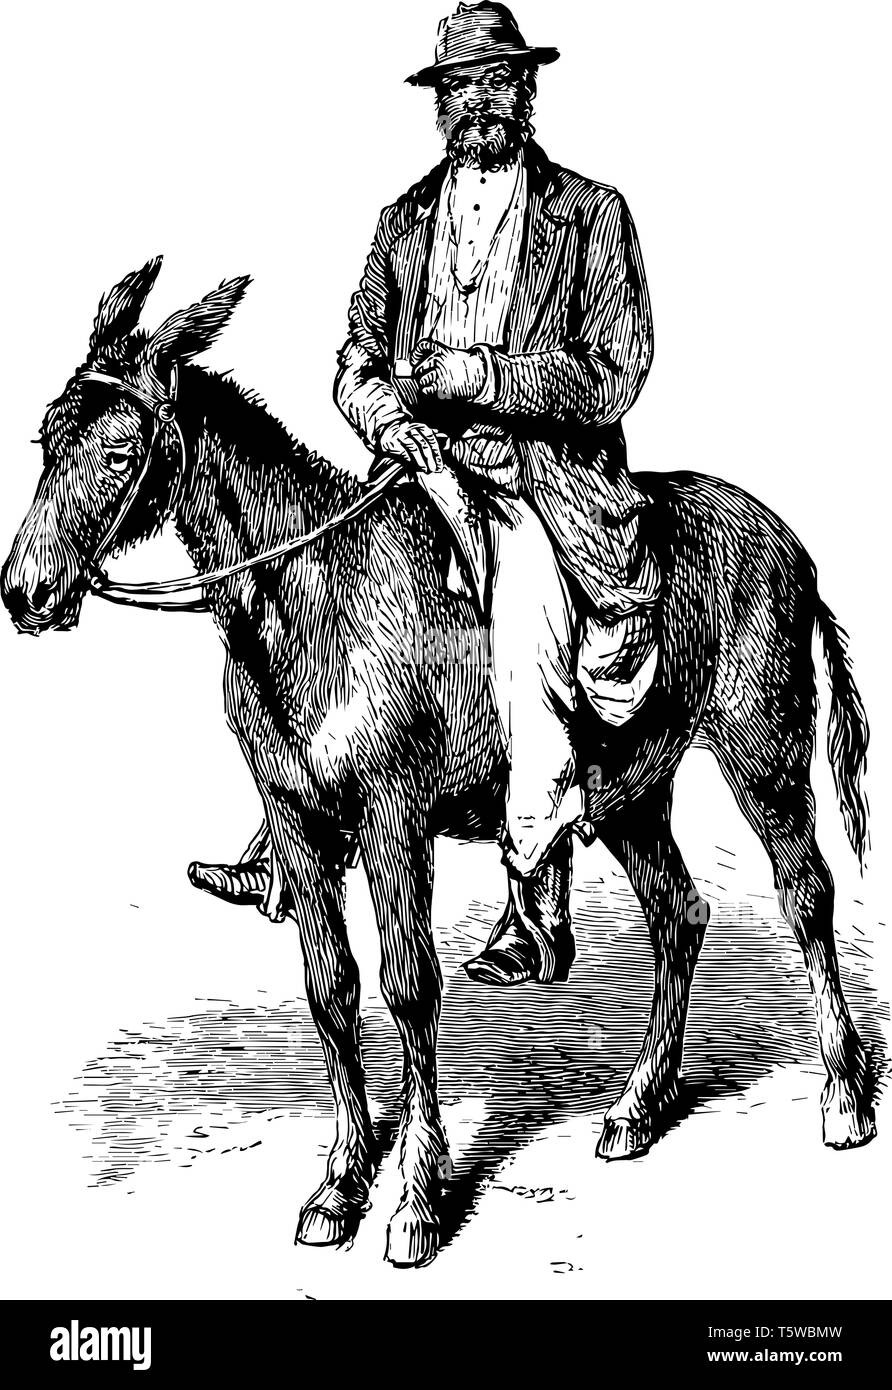 A Man Riding On Horse Vintage Line Drawing Or Engraving Illustration Stock Vector Image Art Alamy